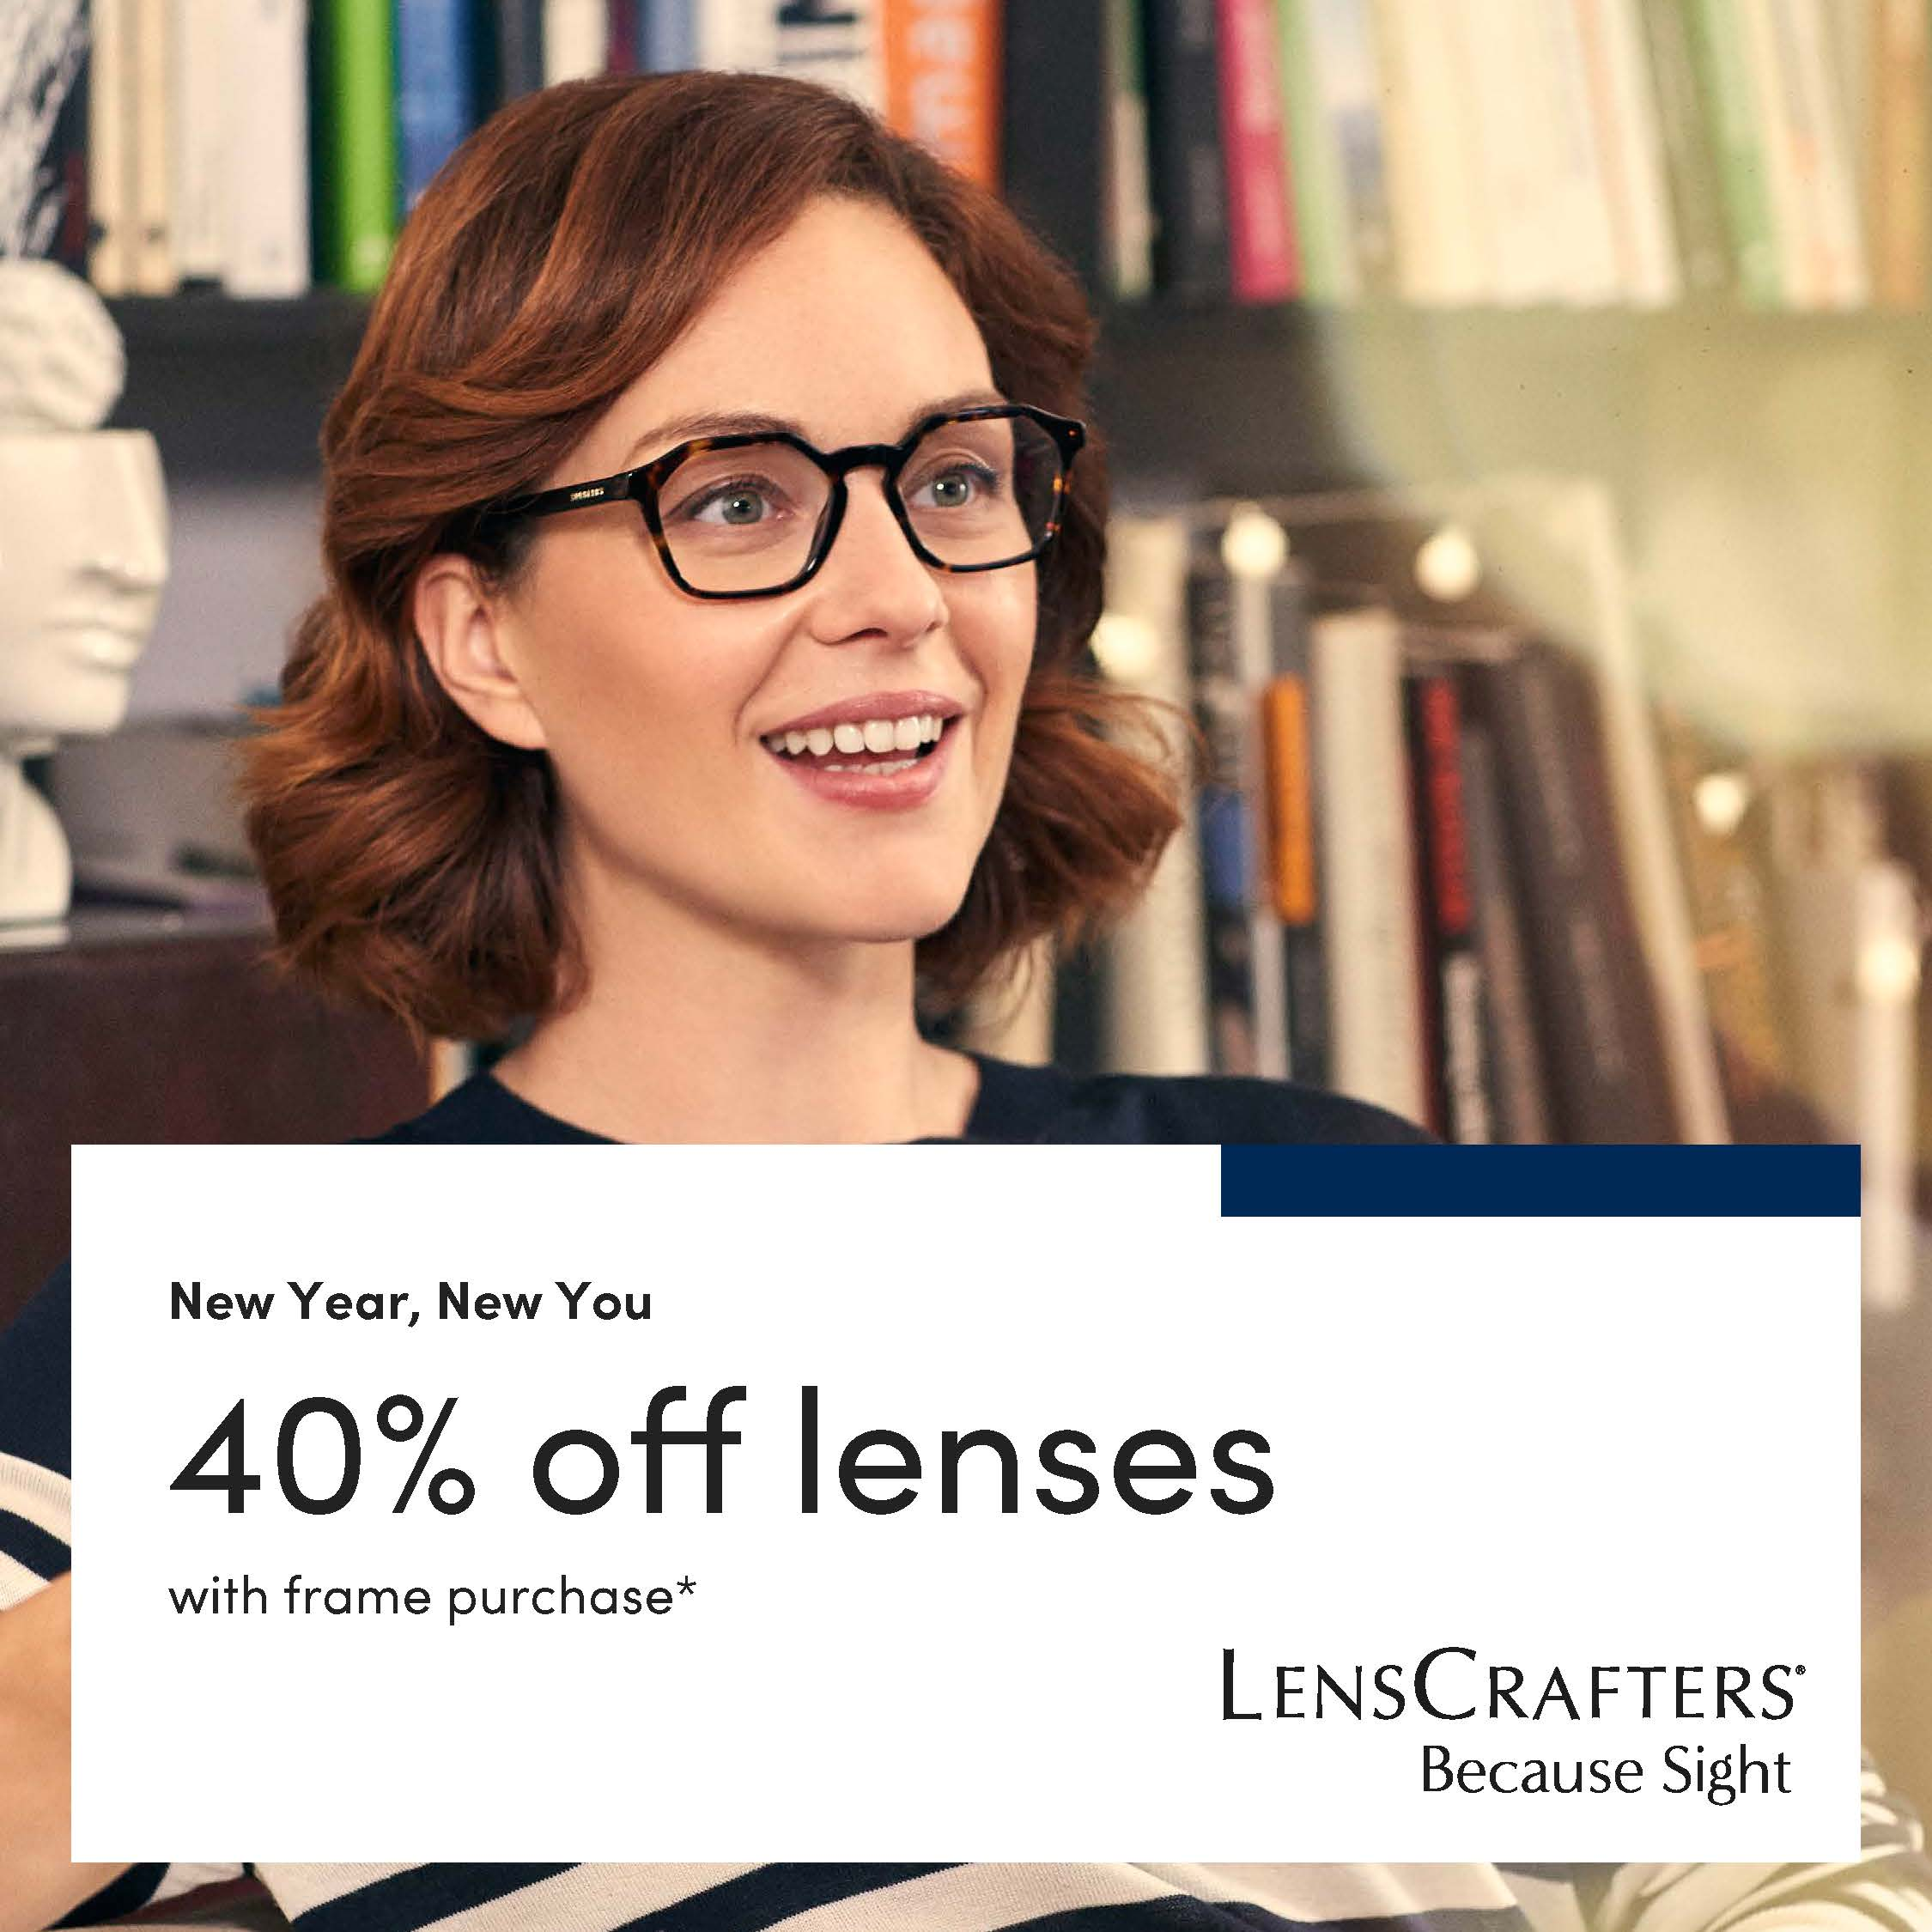 New Year, New You! 40% Off Lenses